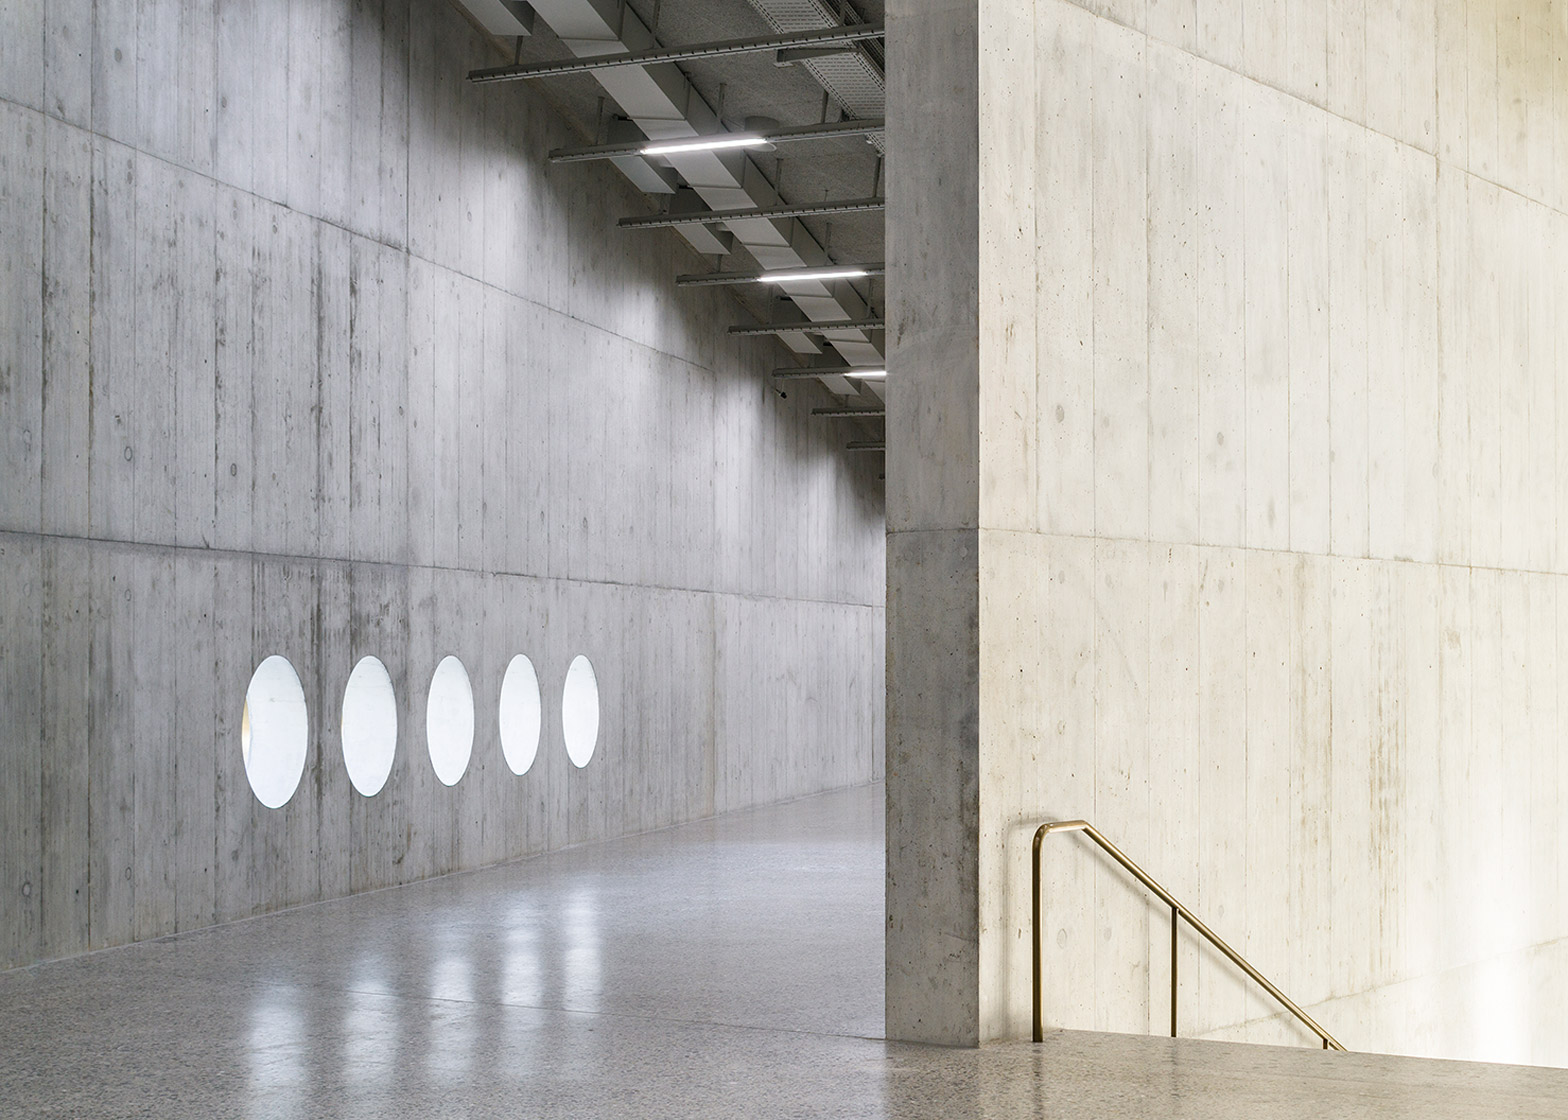 National-Museum-Zurich_Christ-Gantenbein_concrete-extension_dezeen_1568_4.jpg